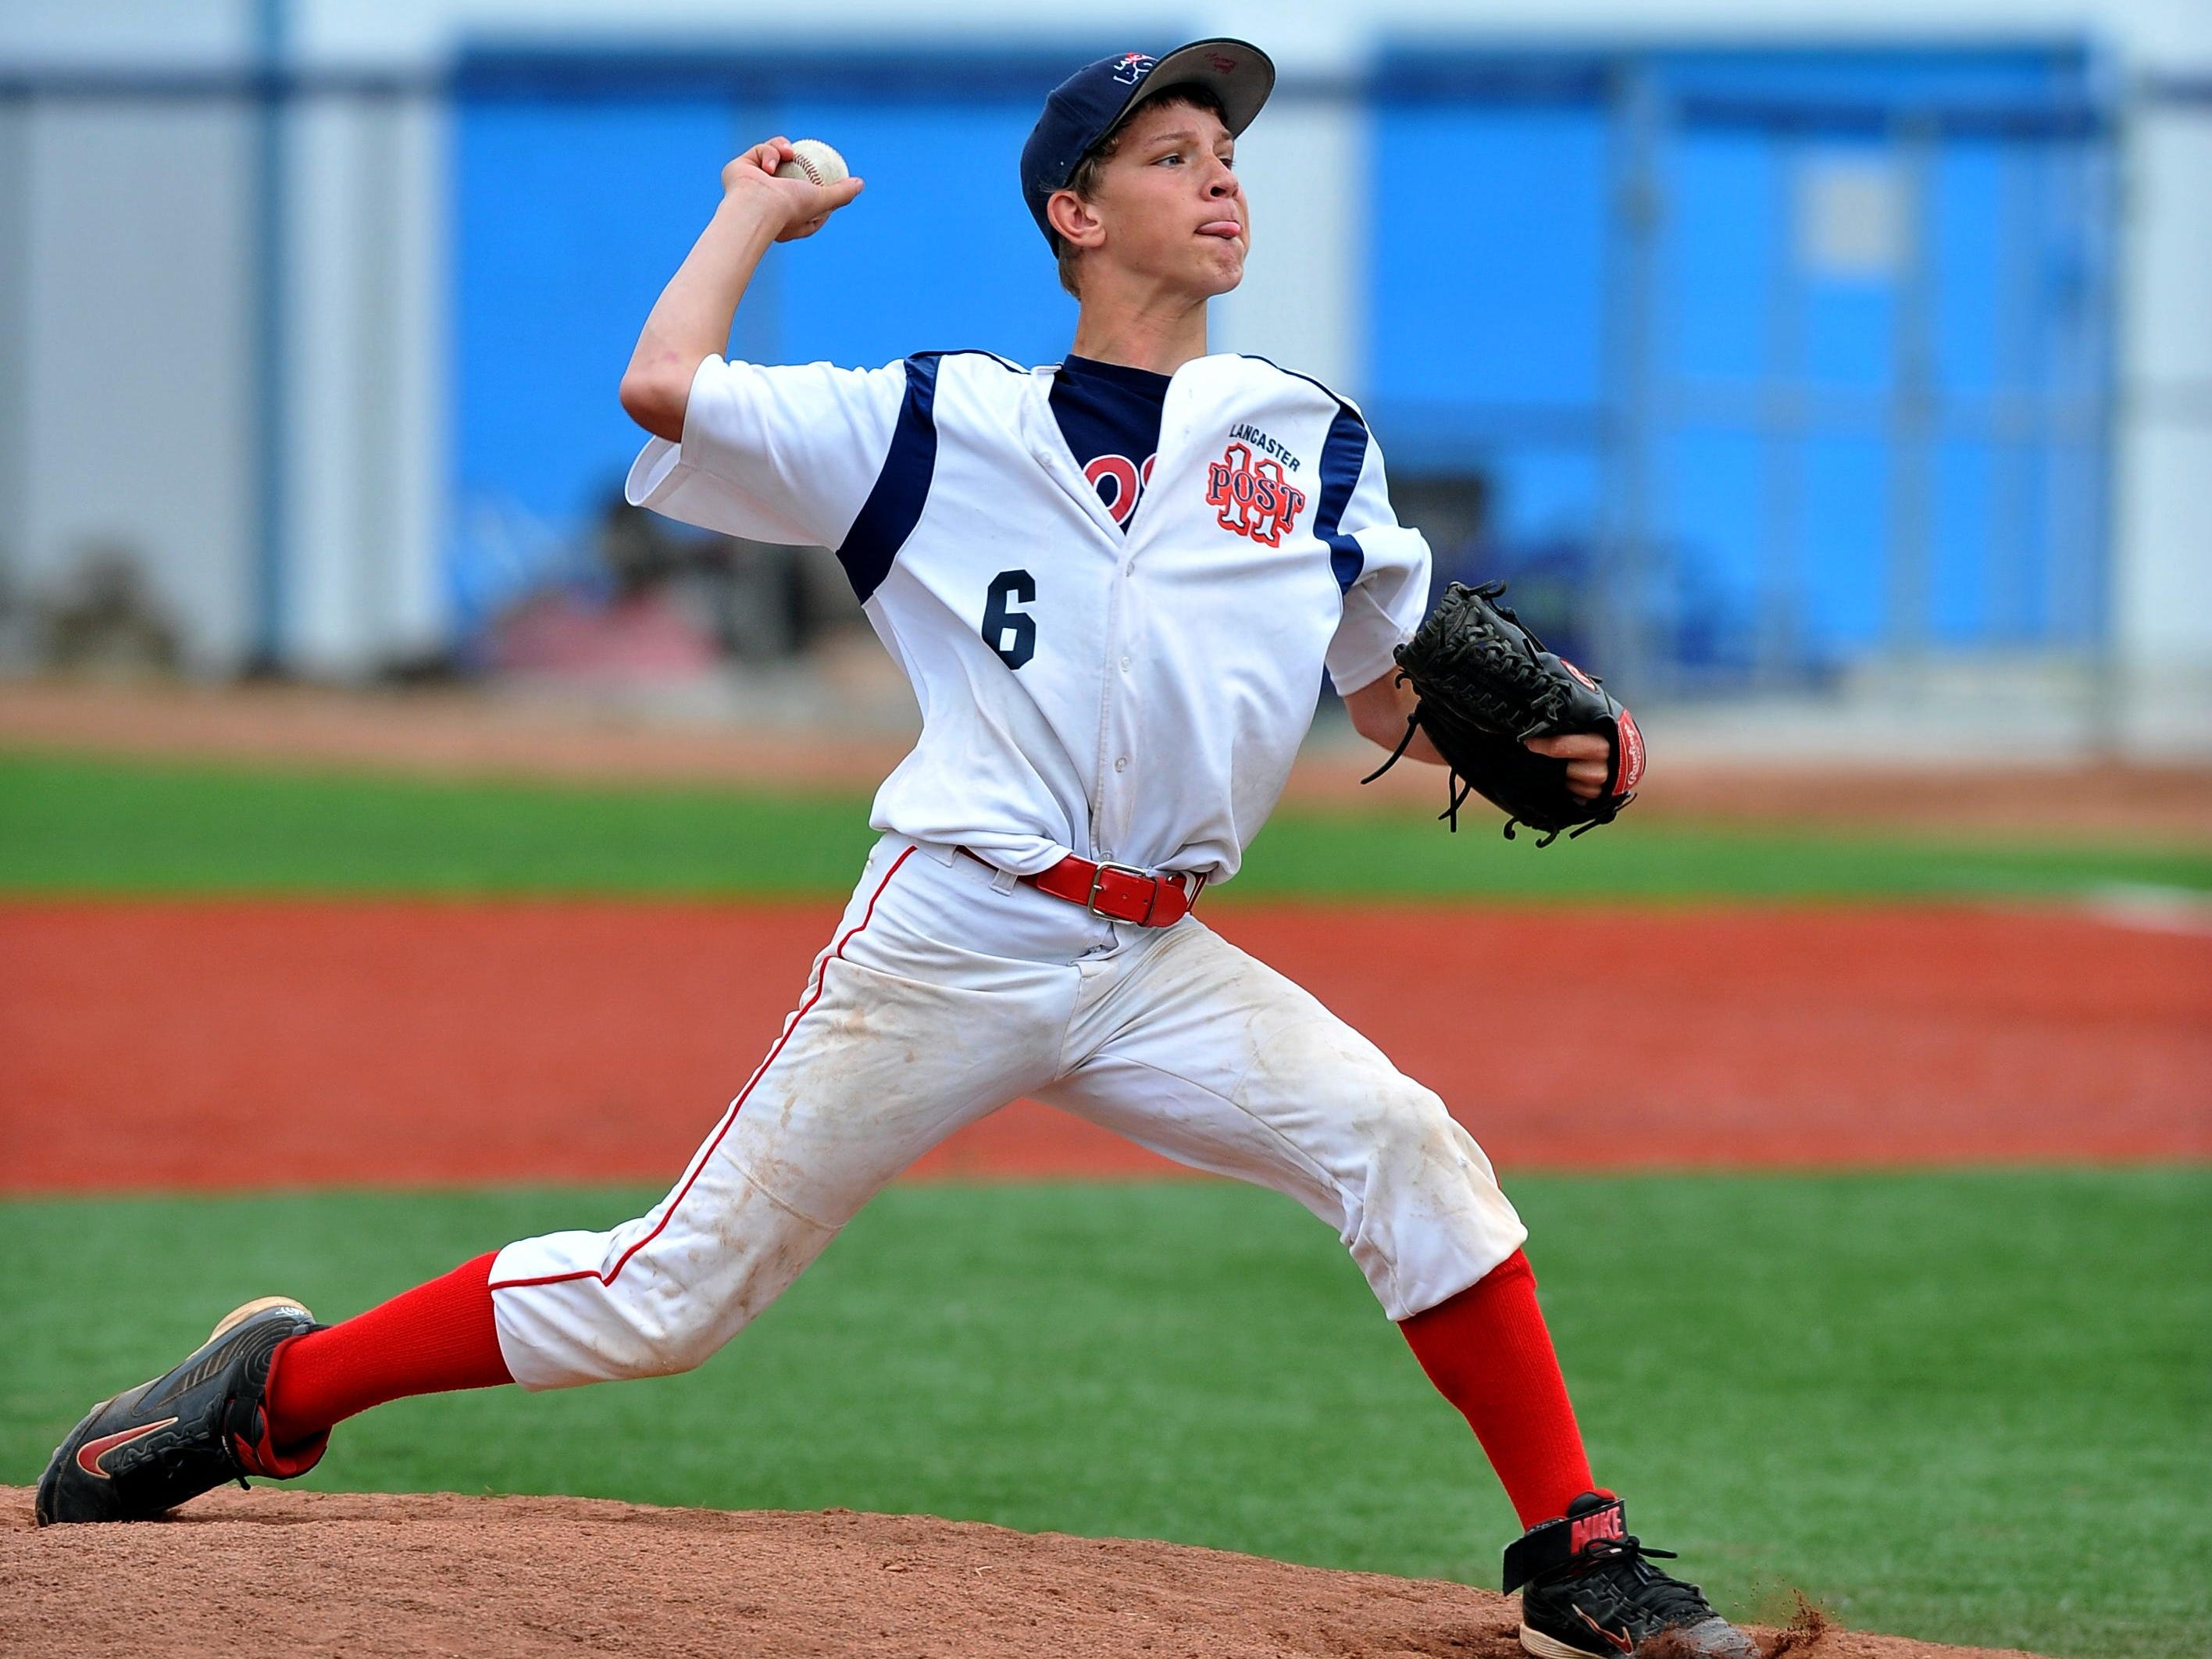 Noah Rossiter pitches during the Lancaster Post 11 Junior team's game against the Utica Post 92 Junior team Wednesday night at Beavers Field in Lancaster. Post 11 lost the game 9-7.